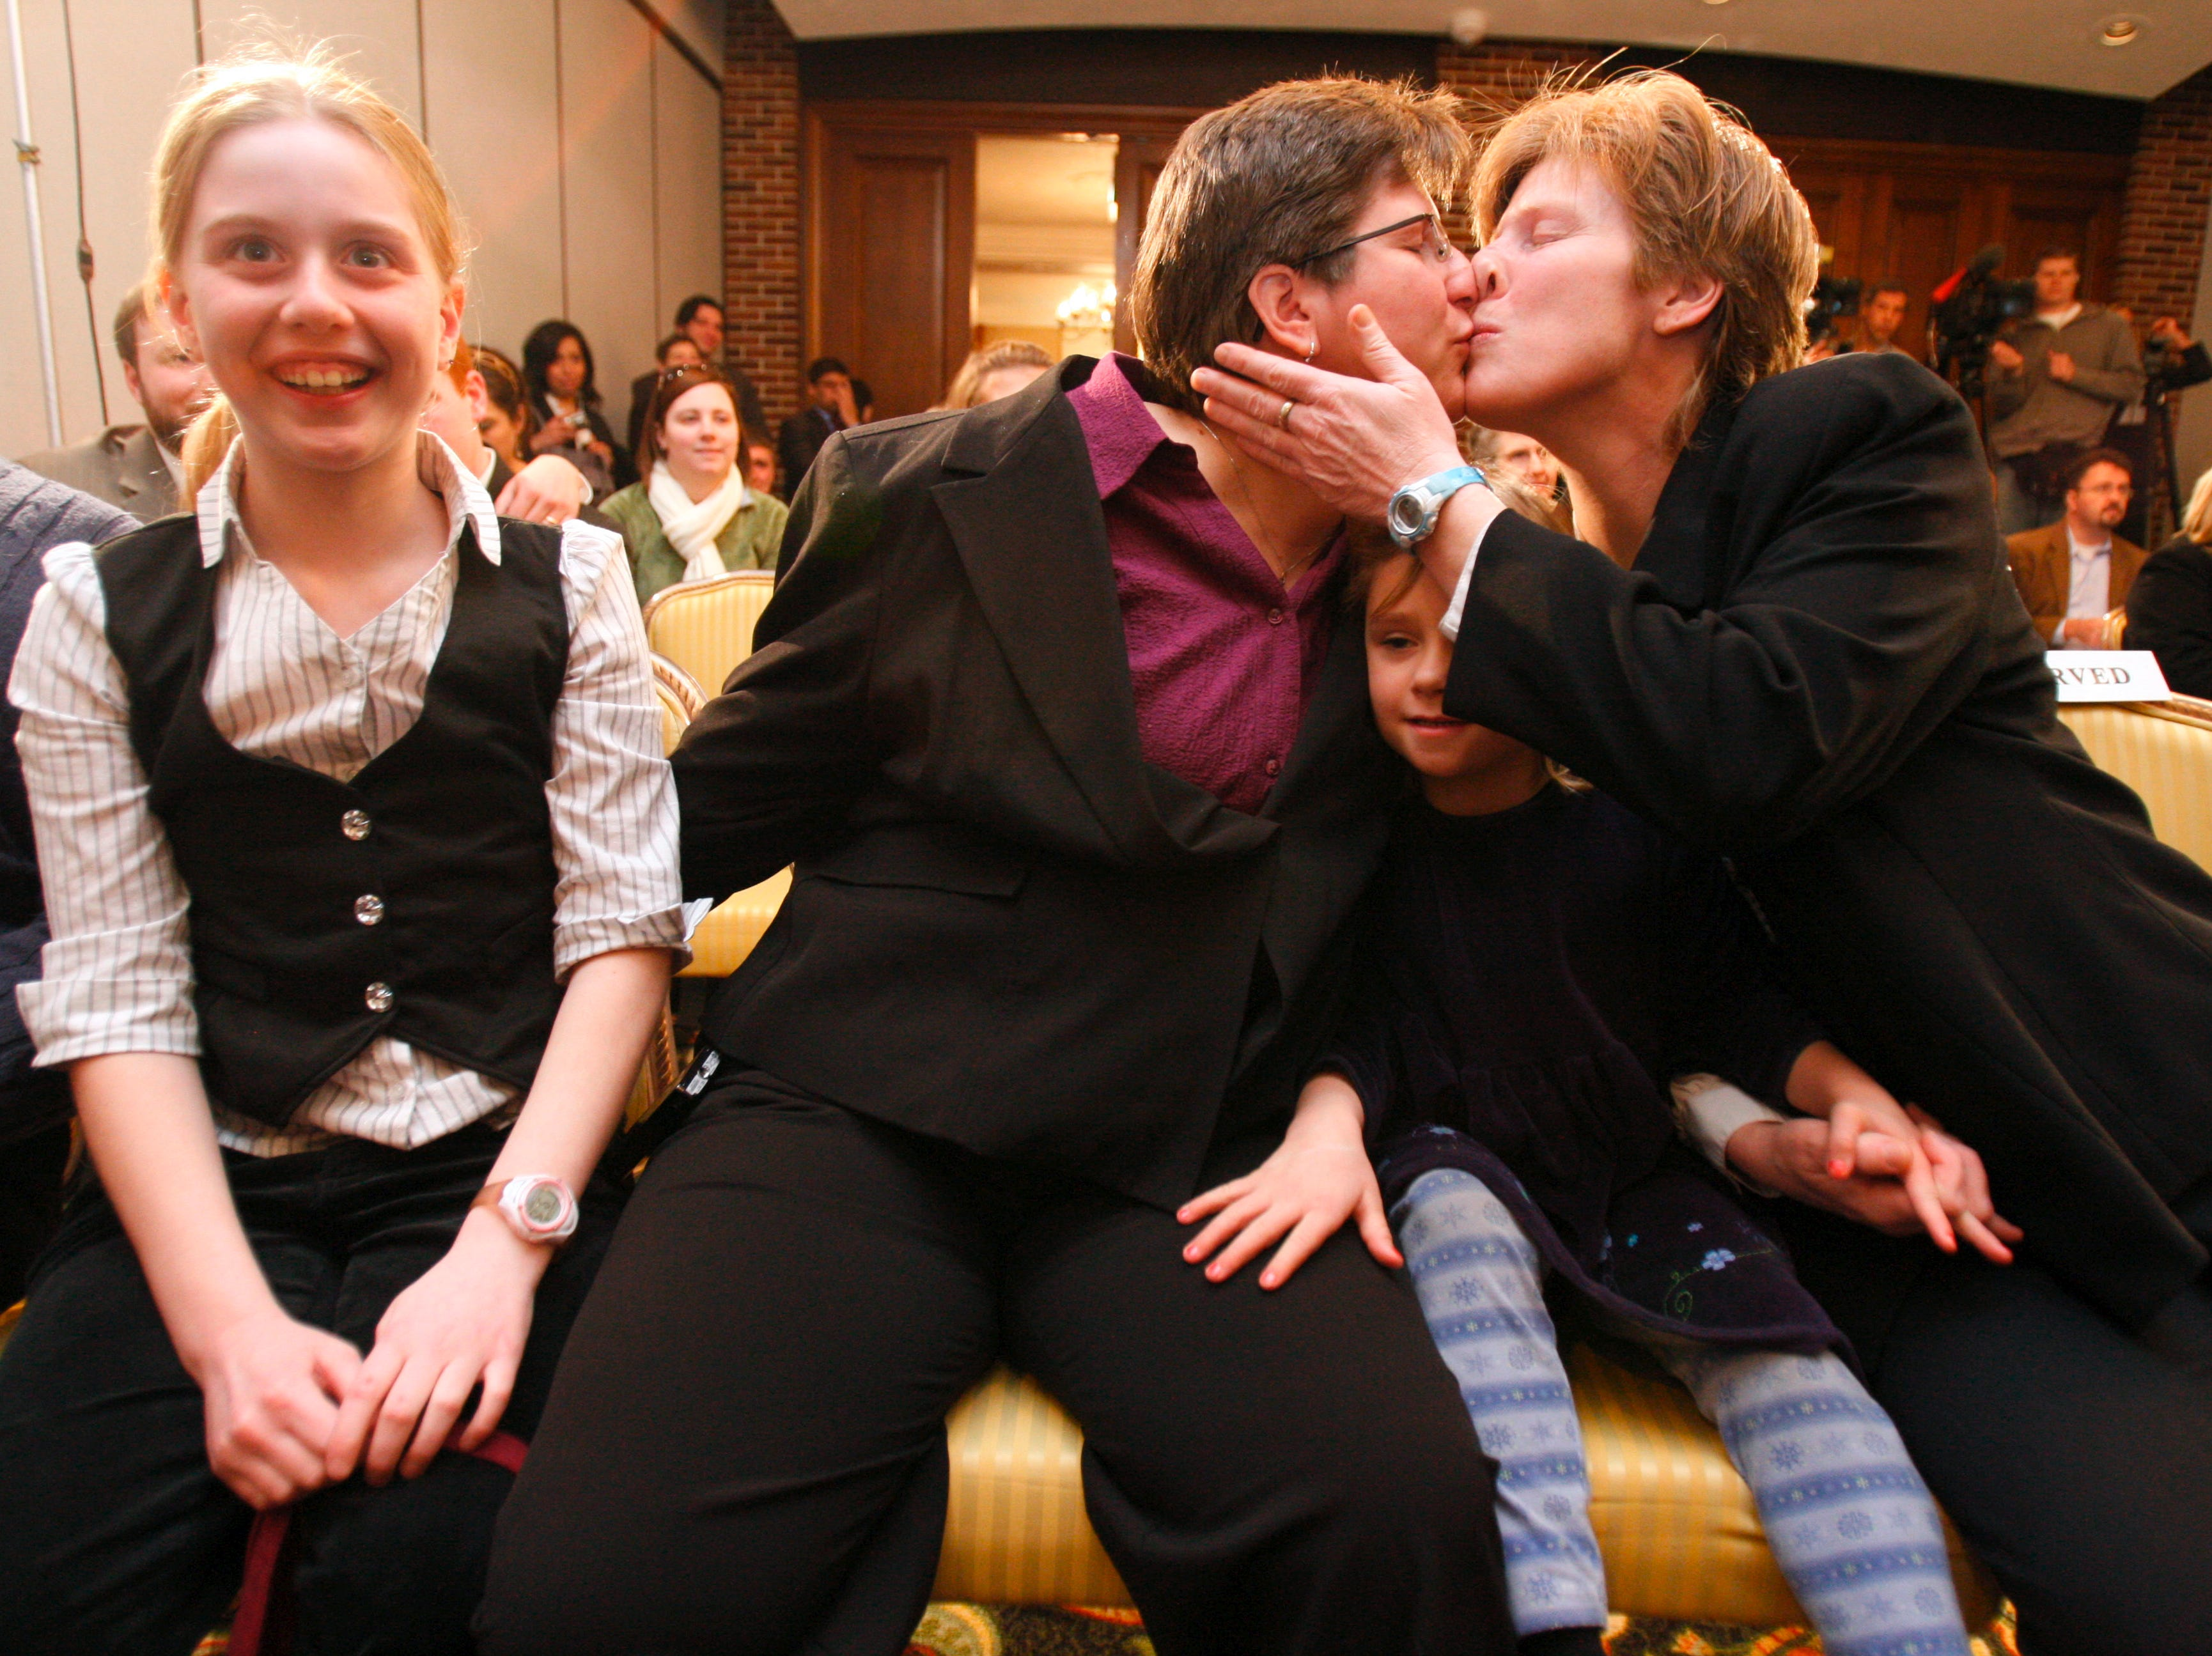 Dawn BarbouRoske, second from left, of Iowa City, kisses her partner, Jen BarbouRoske, after learning of the Iowa Supreme Court ruling in favor of legalizing gay marriage in Iowa on Friday, April 3, 2009 in Des Moines.  Between them is their daughter Bre, 6. Their other daughter, McKinley, 11, reacts to the ruling a left. (Christopher Gannon/The Des Moines Register)